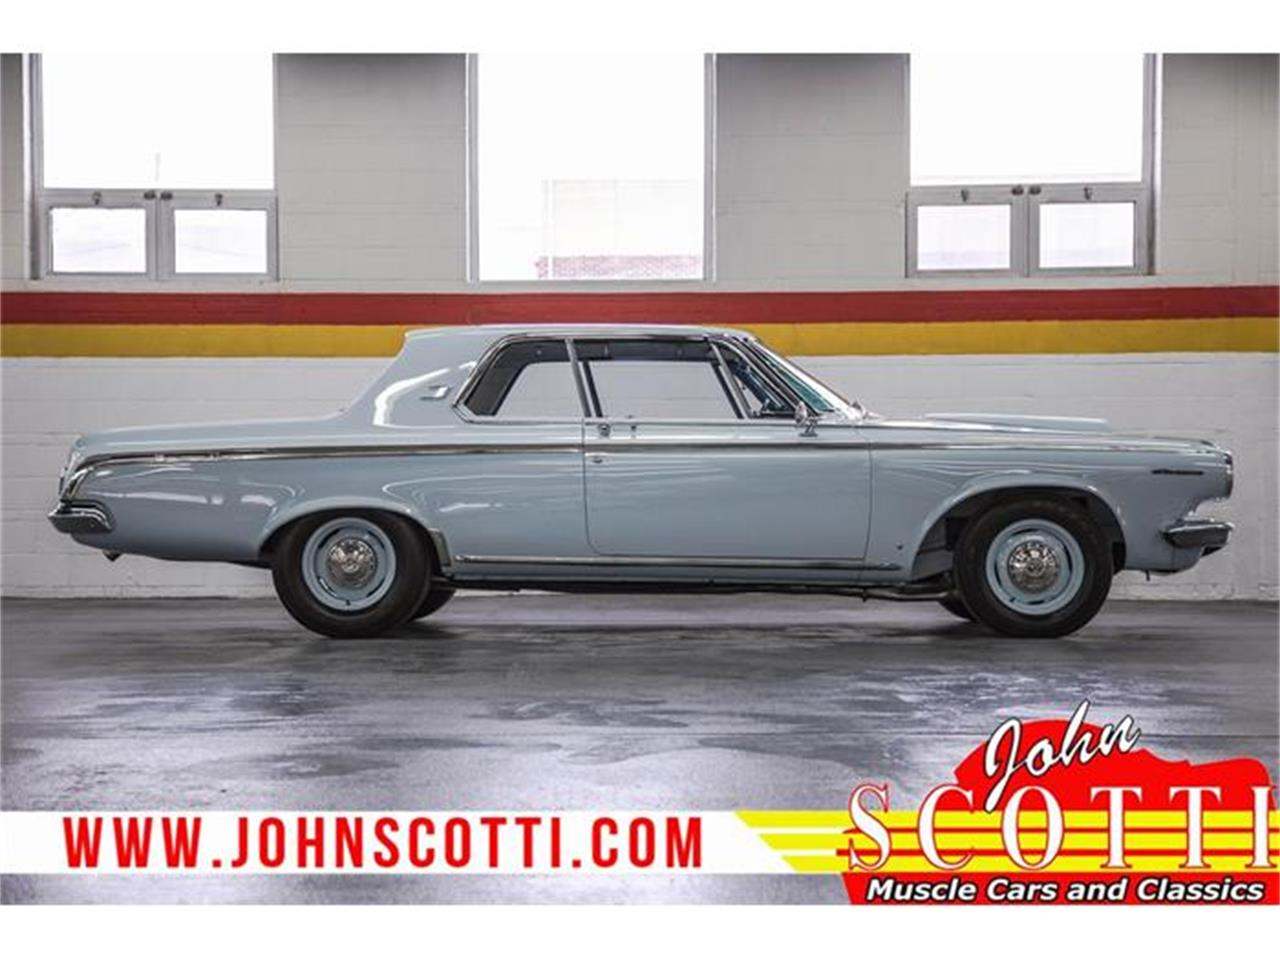 Large Picture of Classic '63 Dodge Polara located in Quebec - $54,500.00 Offered by John Scotti Classic Cars - GA0M